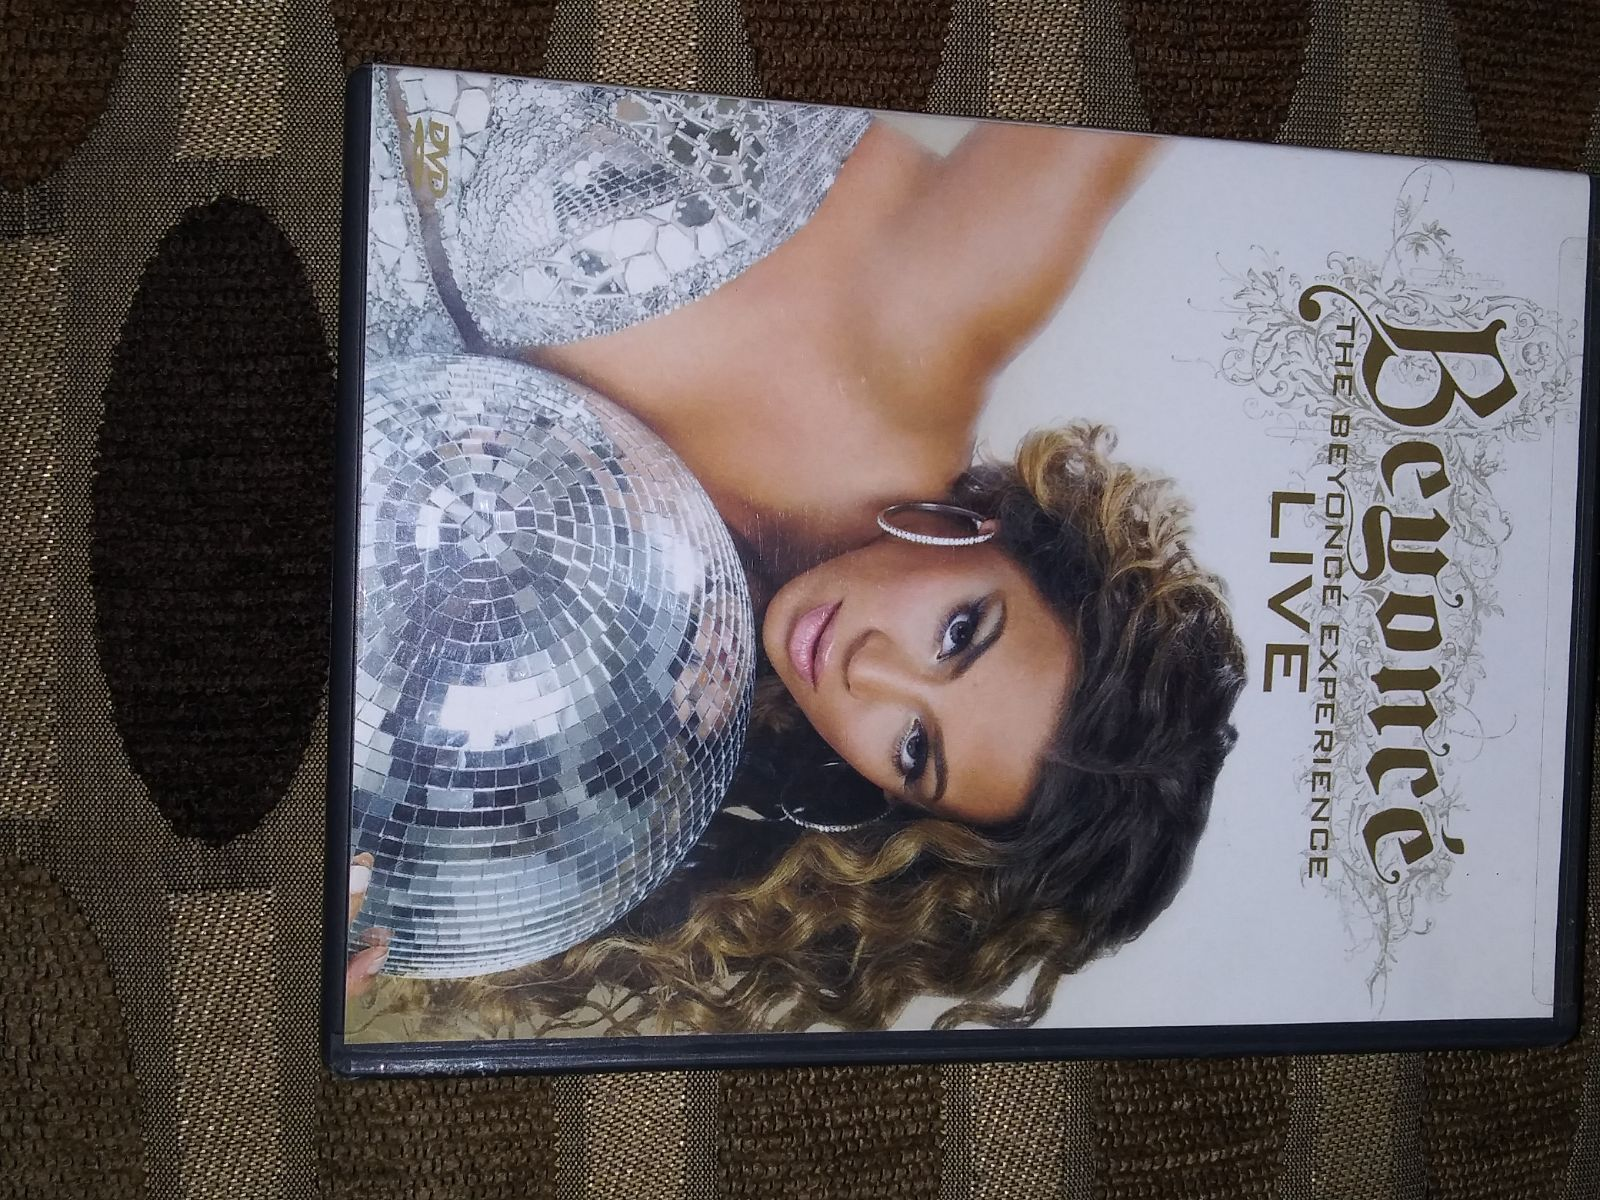 The Beyonce experience live dvd